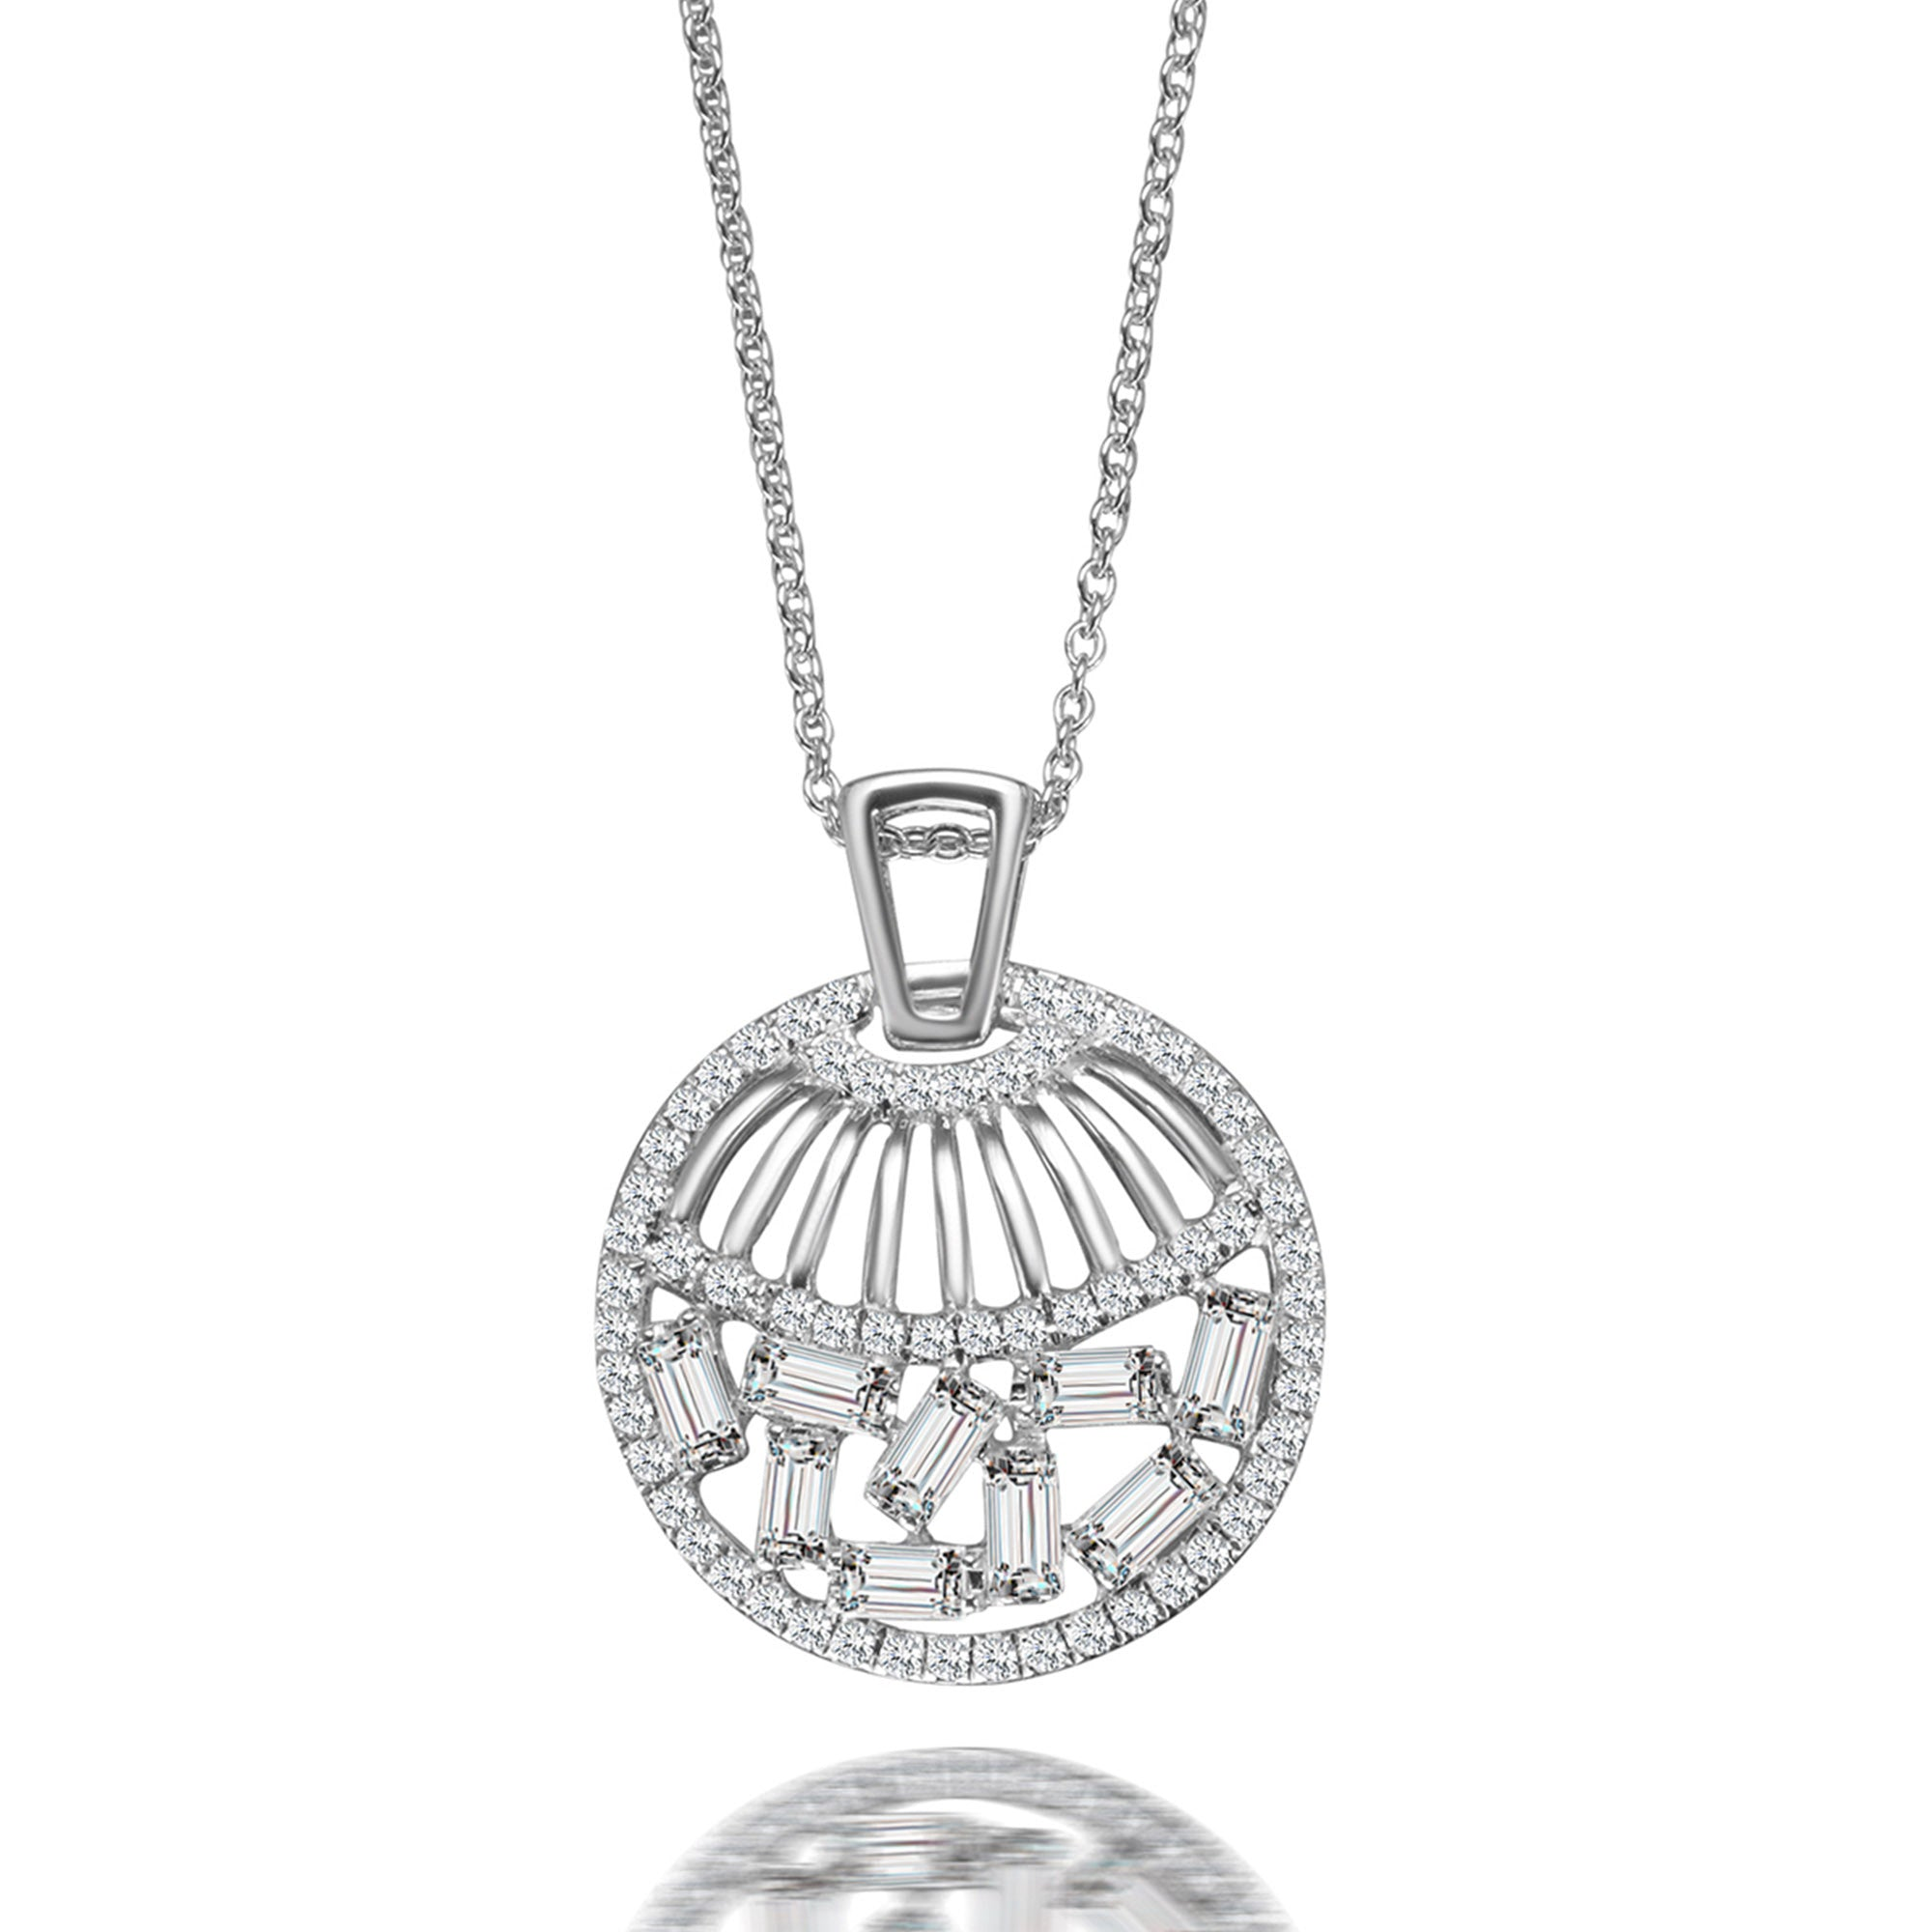 important magnificent weighing necklace pendant highly the shaped du diamond platinum highlights from carats sothebys and jewels april jour pear york new